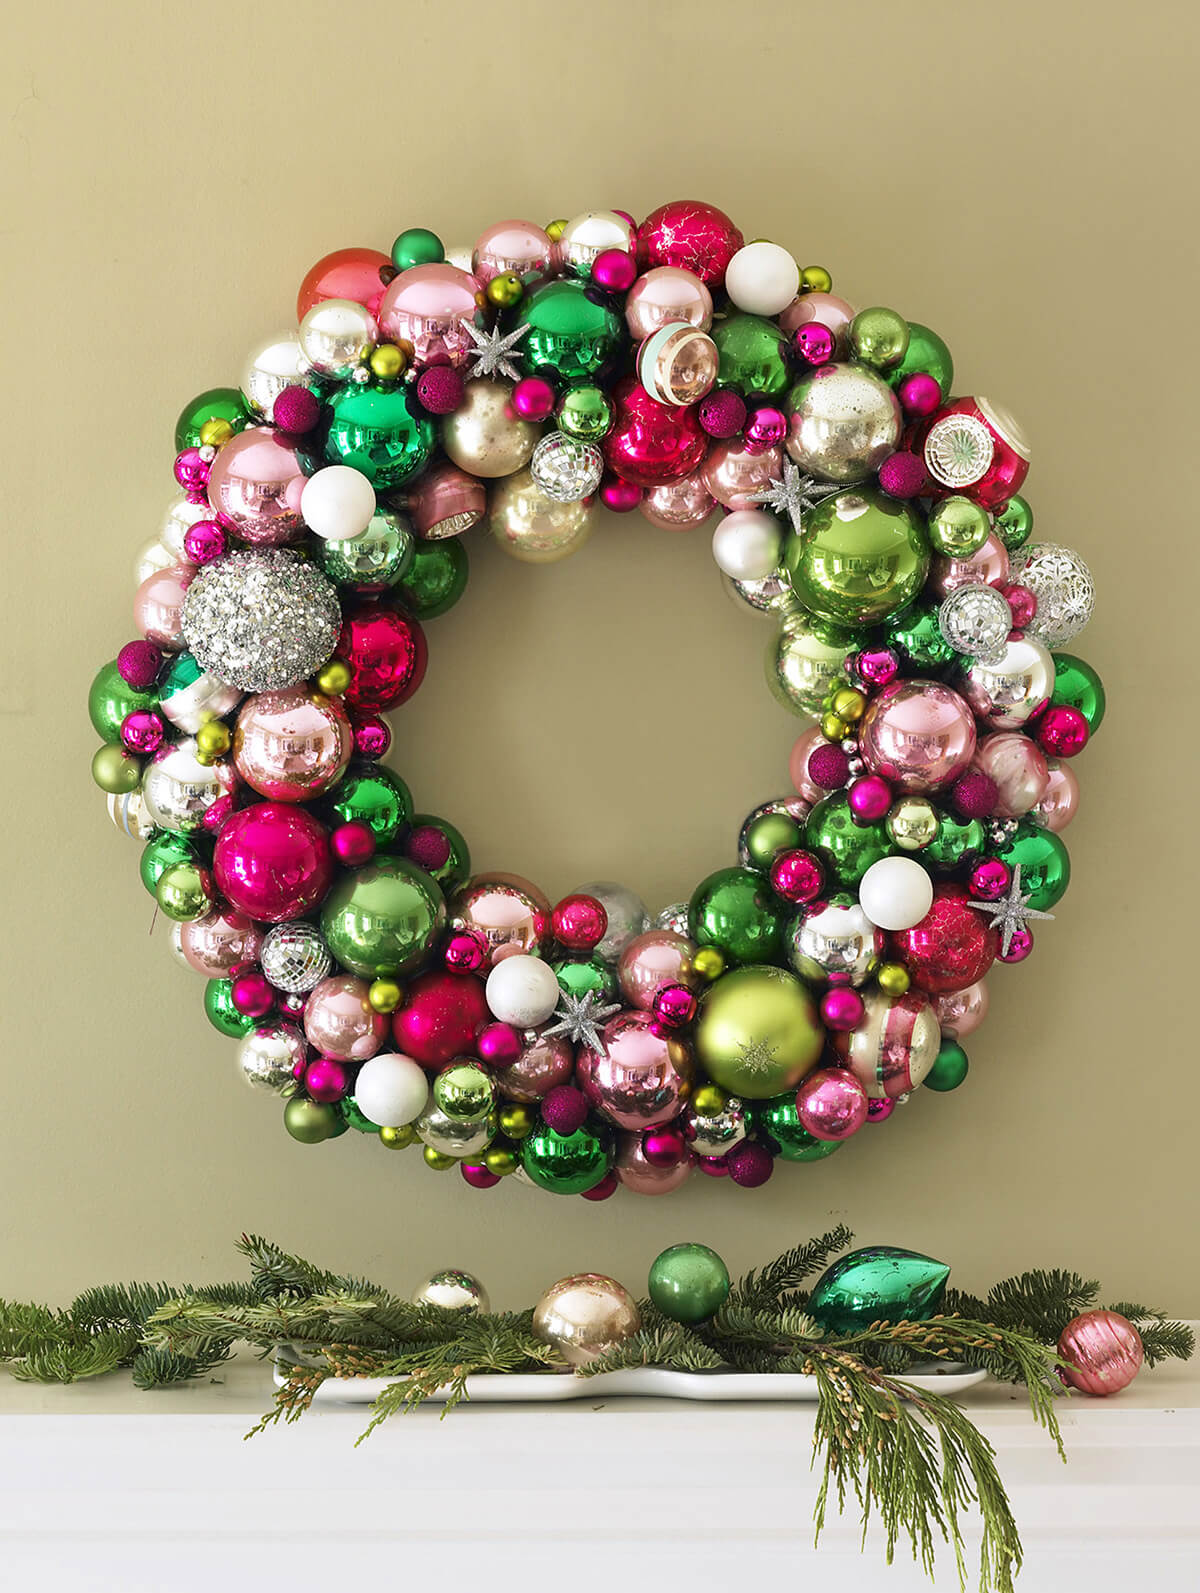 Amazing Mixed Ornament Indoor Wreath